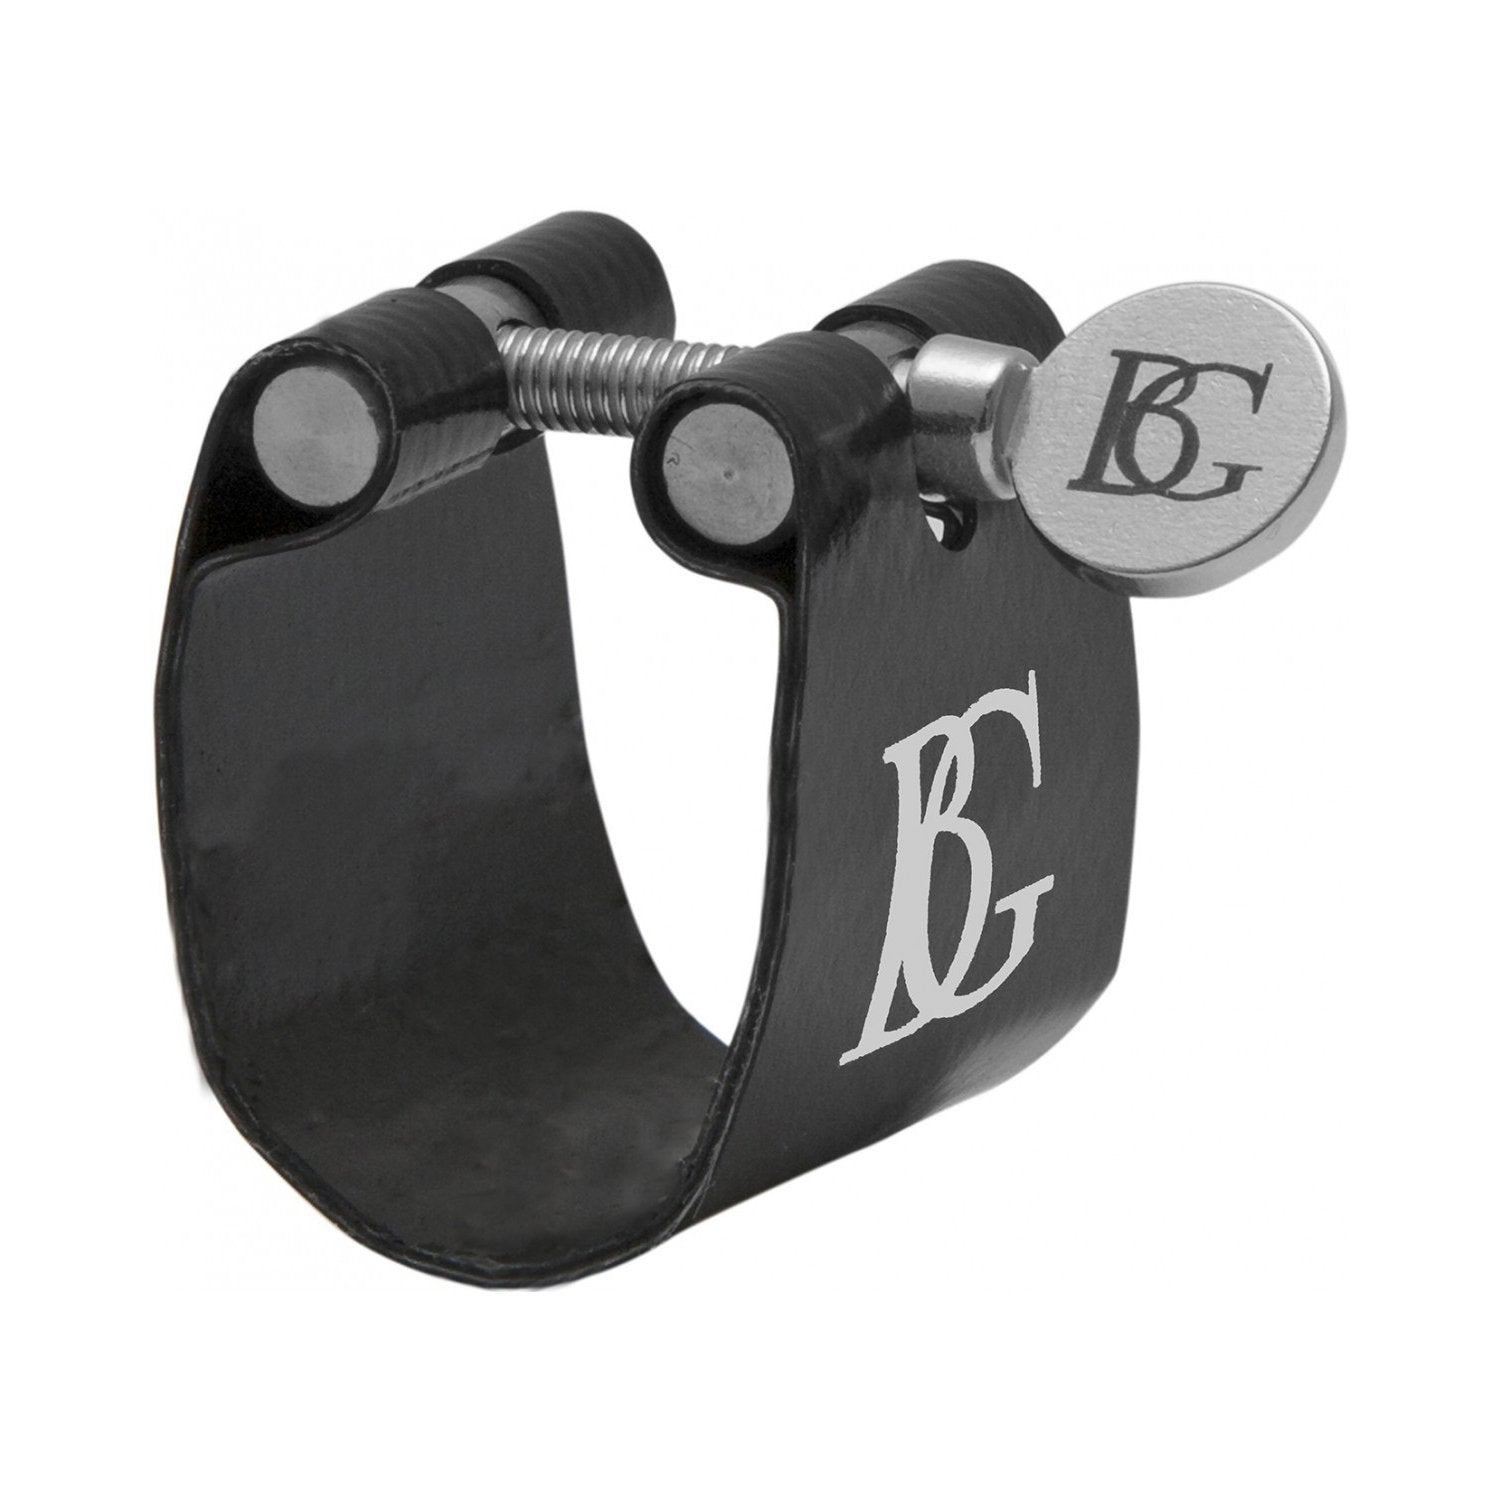 BG France - FLEX Ligatures for Eb Clarinet-Ligature-BG France-Black-Music Elements